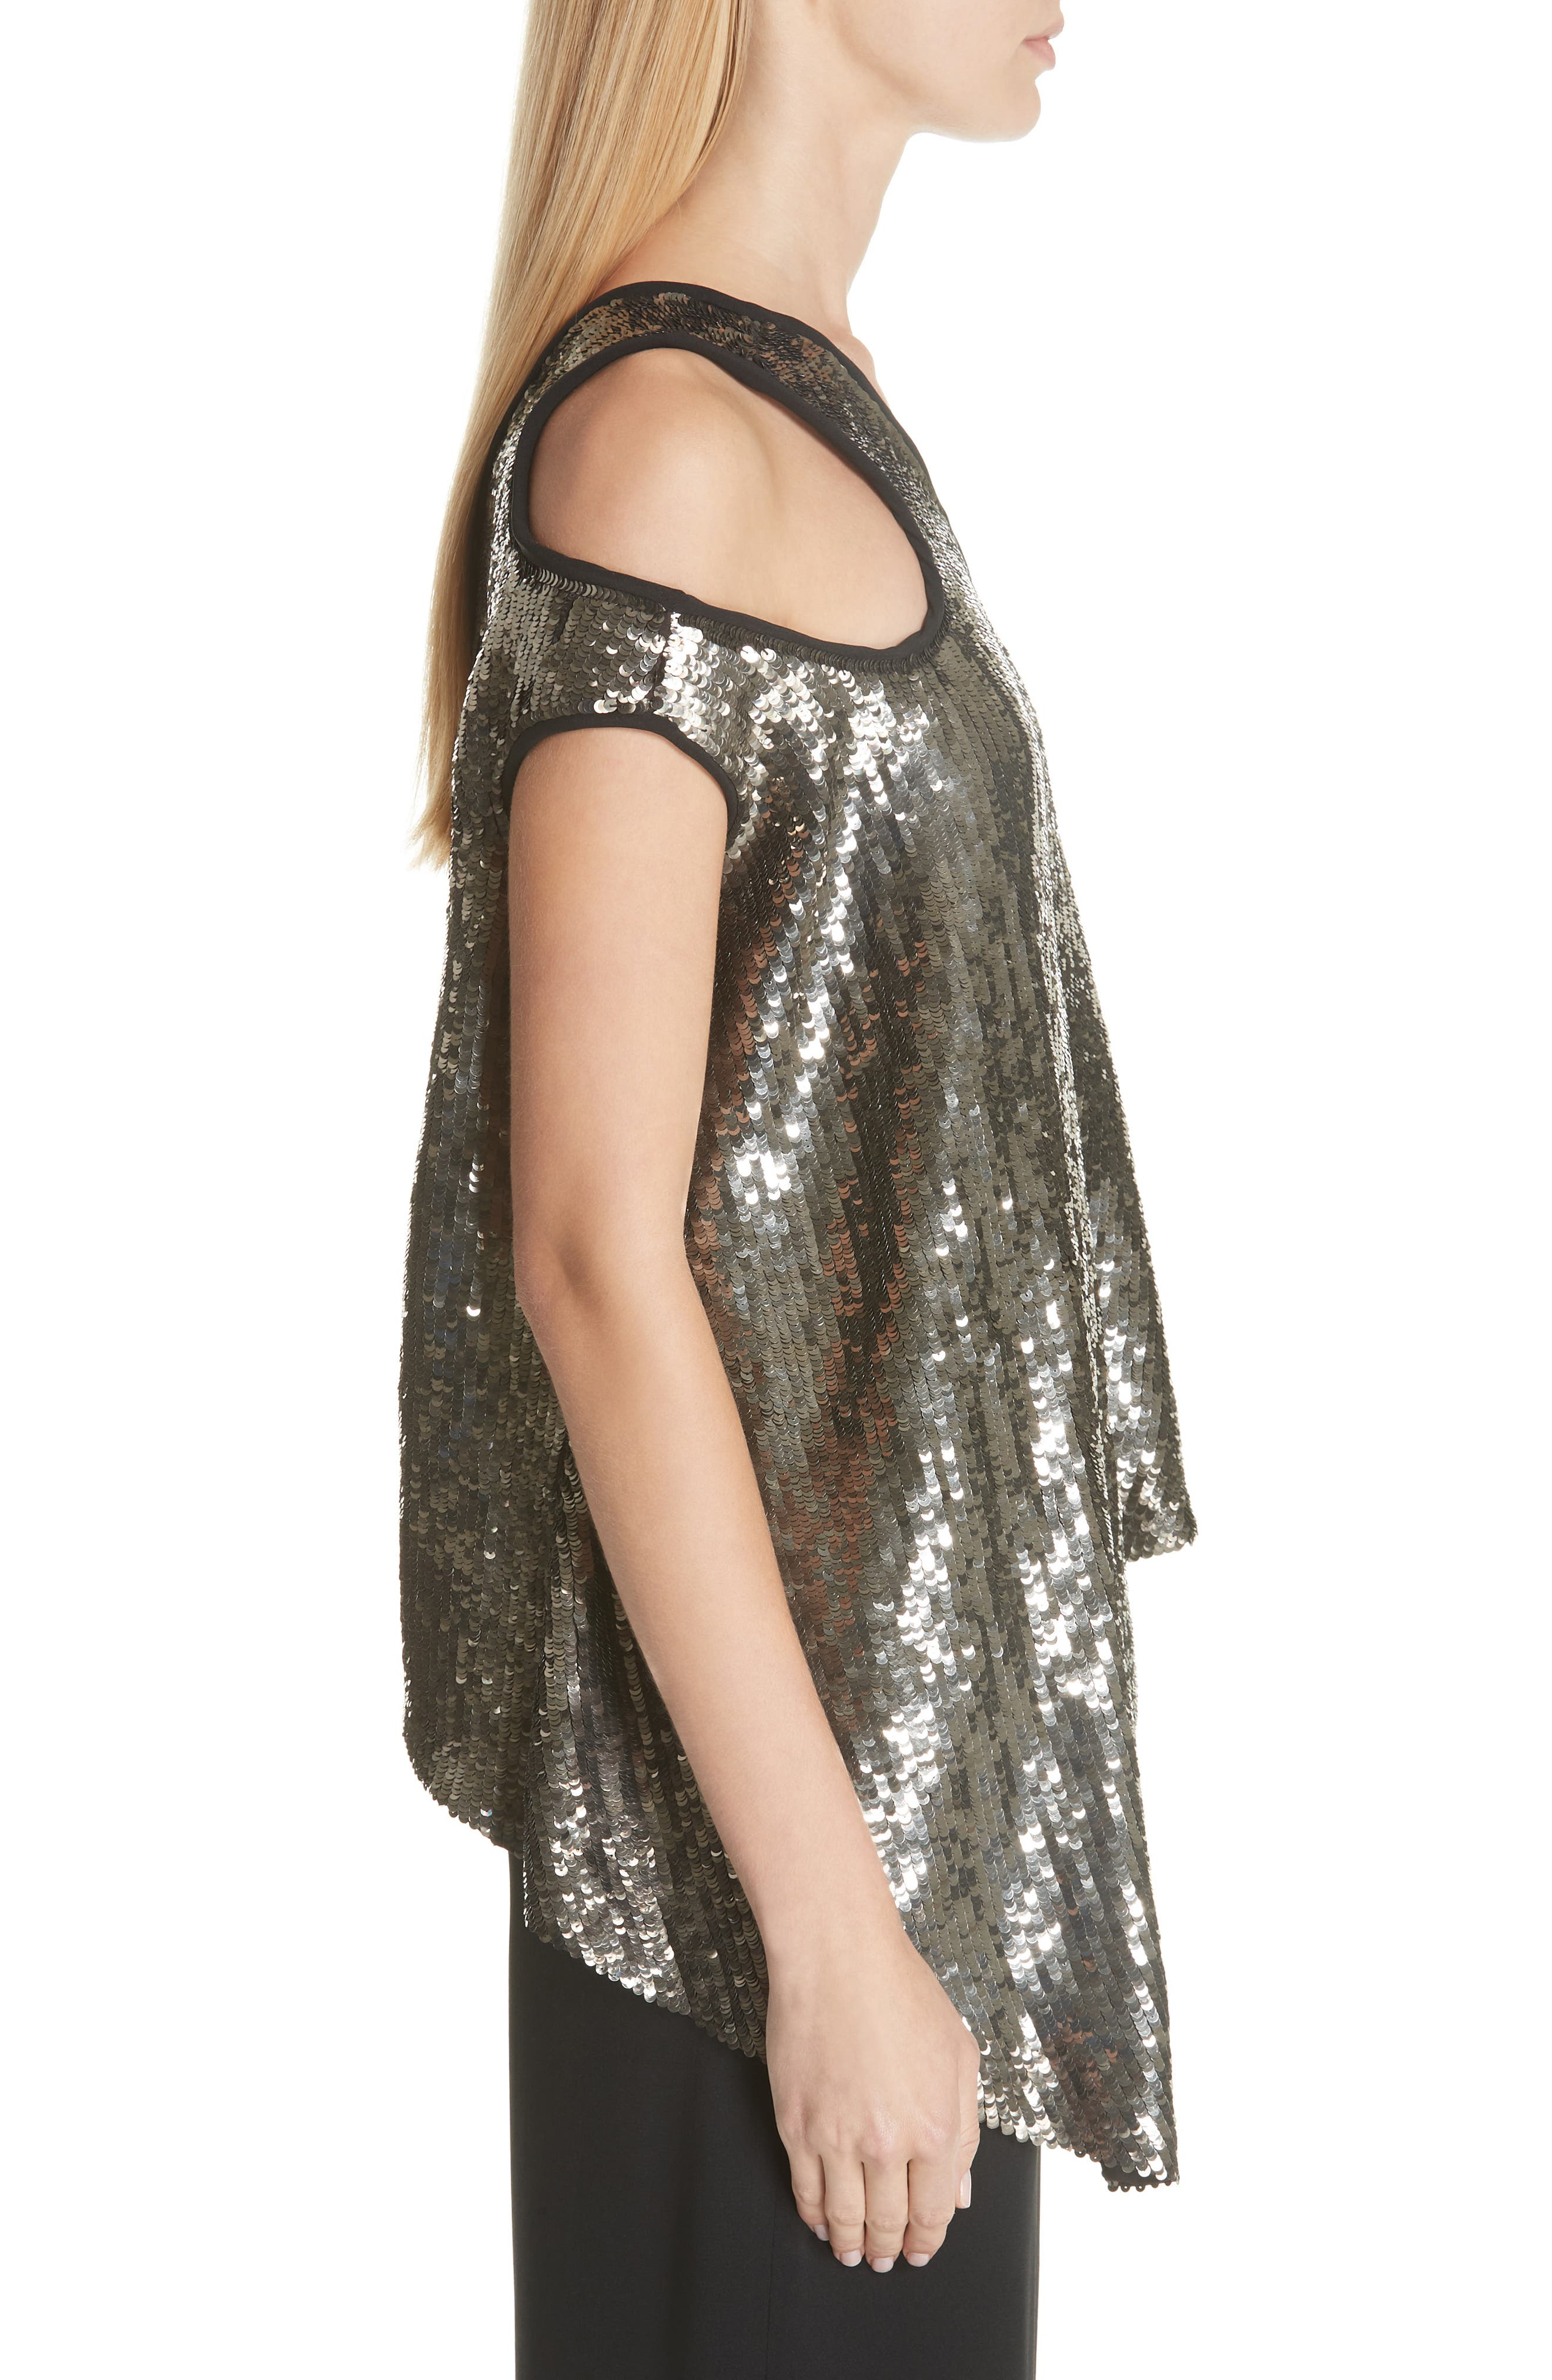 MONSE, Cutout Shoulder Sequin Tank, Alternate thumbnail 3, color, GUN METAL